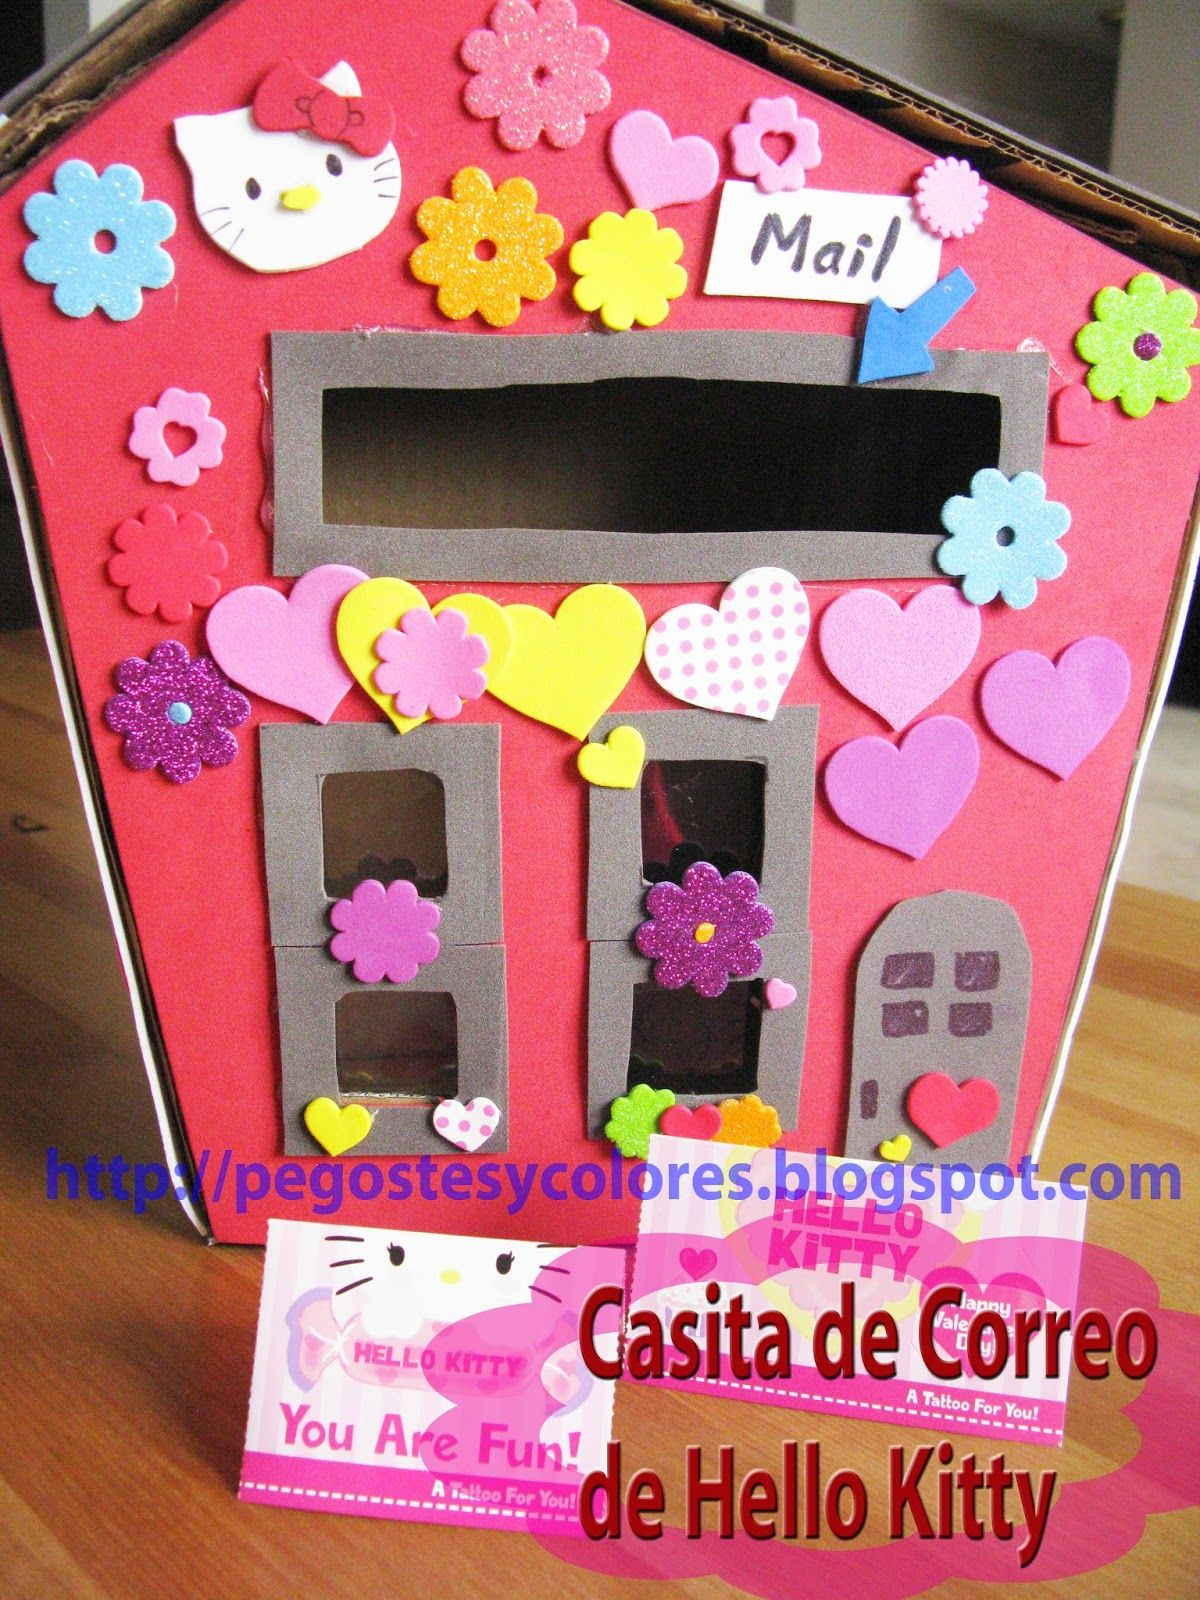 Hello Kitty's Valentine Mail Box - Pegostes y Colores: Casita de Correo de Hello Kitty